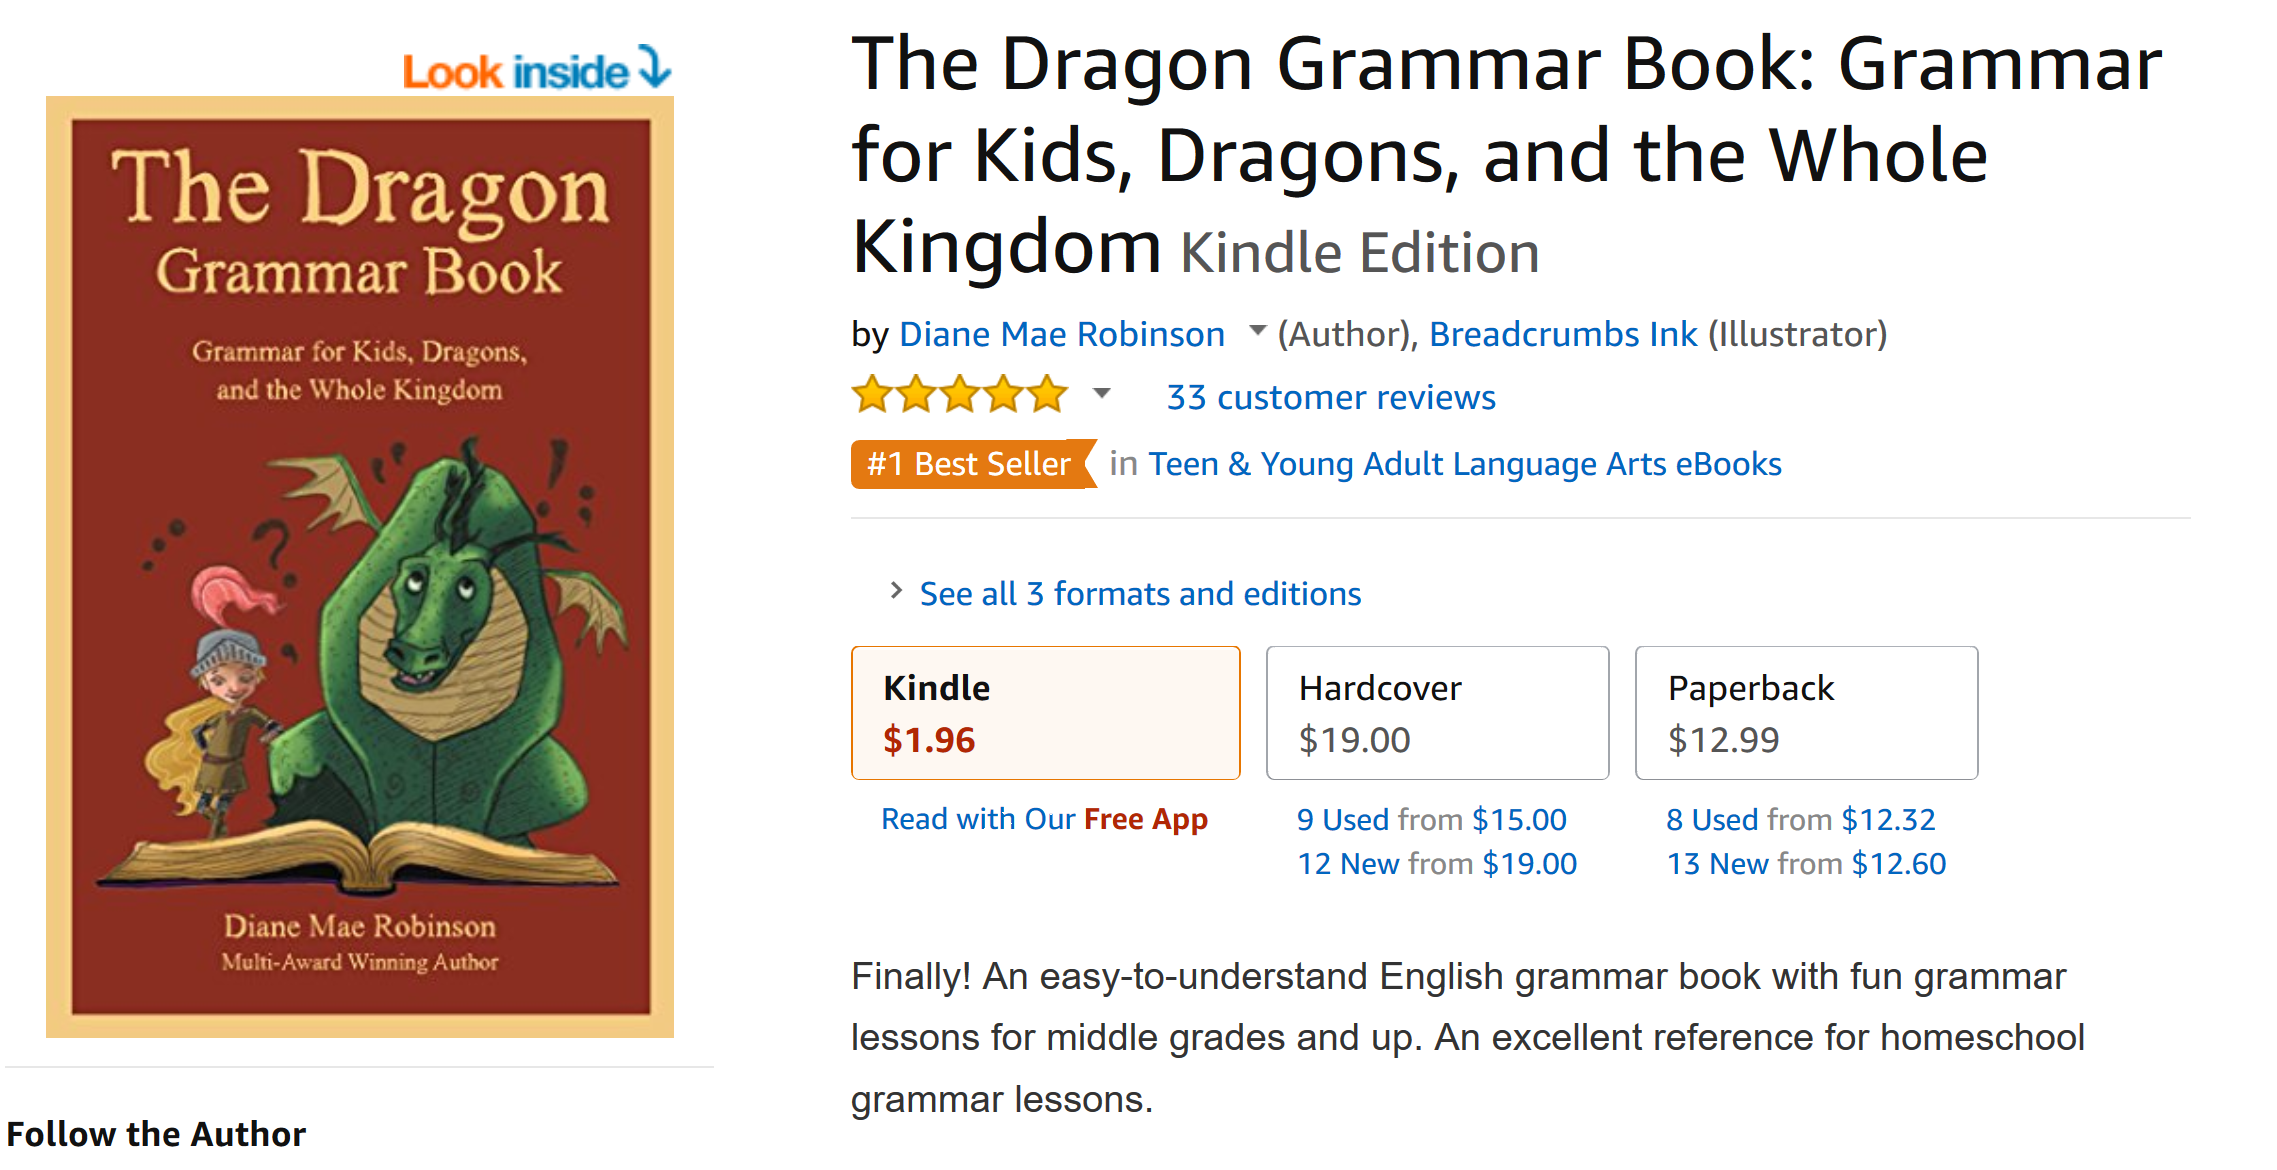 AmazoncomScreenshot_2018-07-13 The Dragon Grammar Book Grammar for Kids, Dragons, and the Whole Kingdom - Kindle edition by Diane Ma[...]